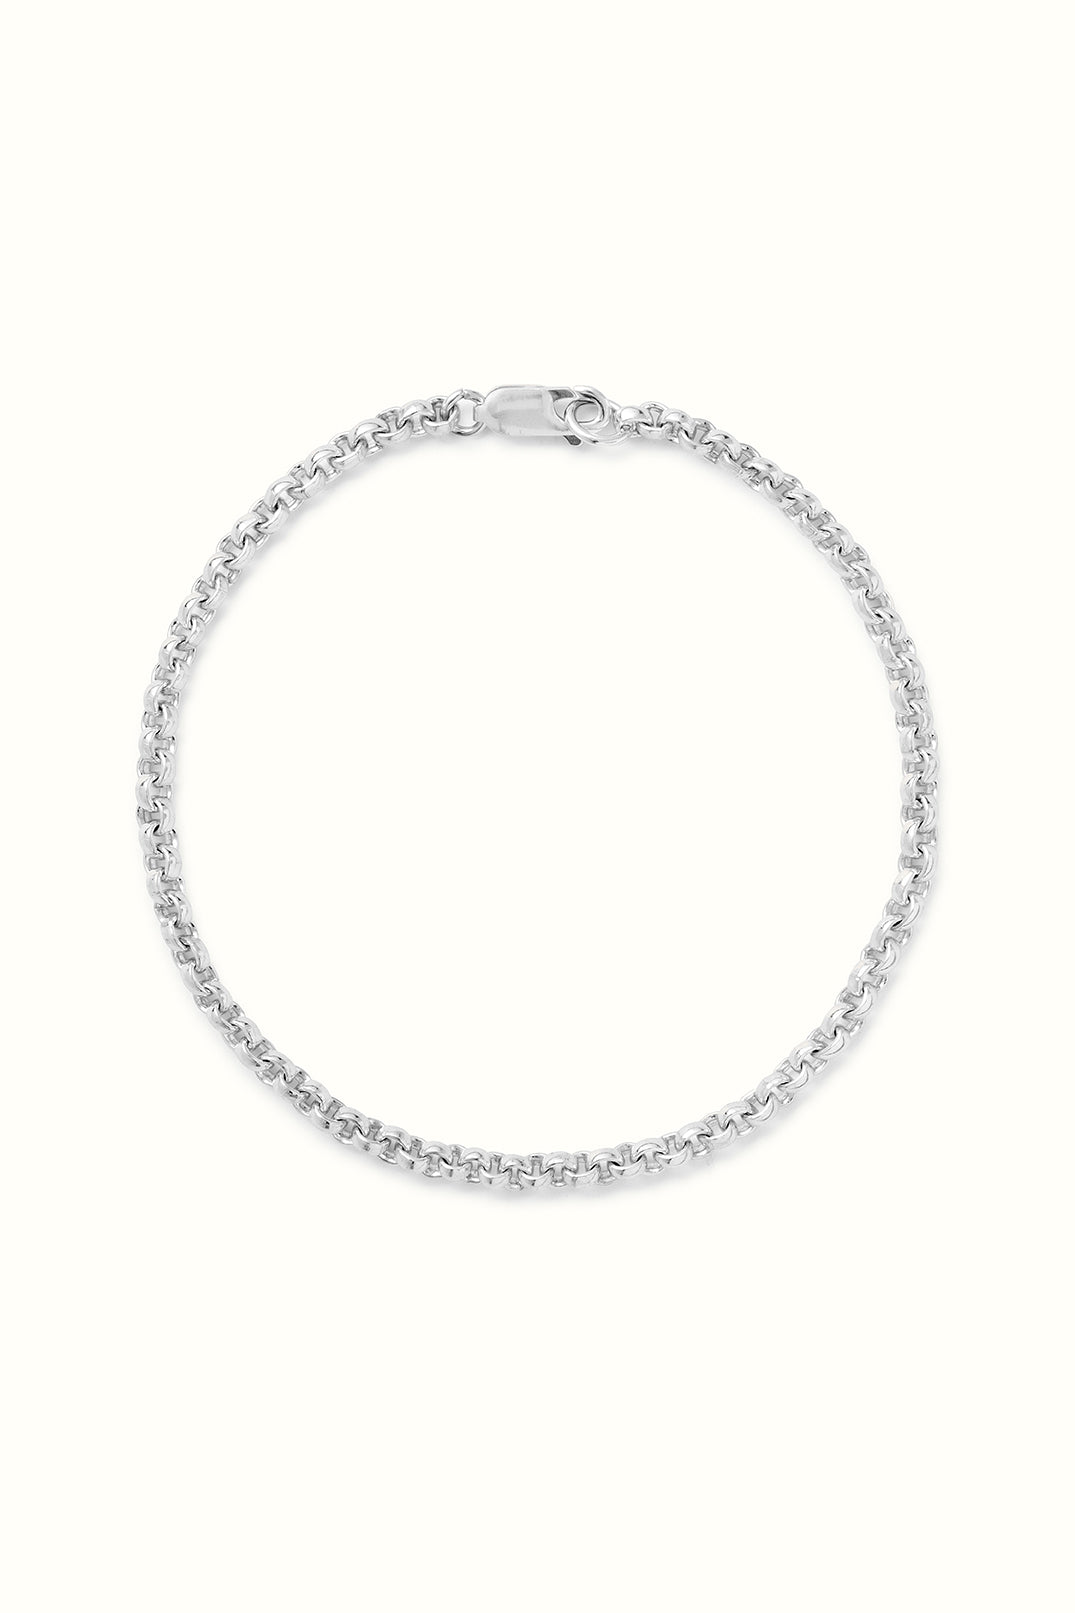 a product picture of a sterling silver rolo chain bracelet on a white surface